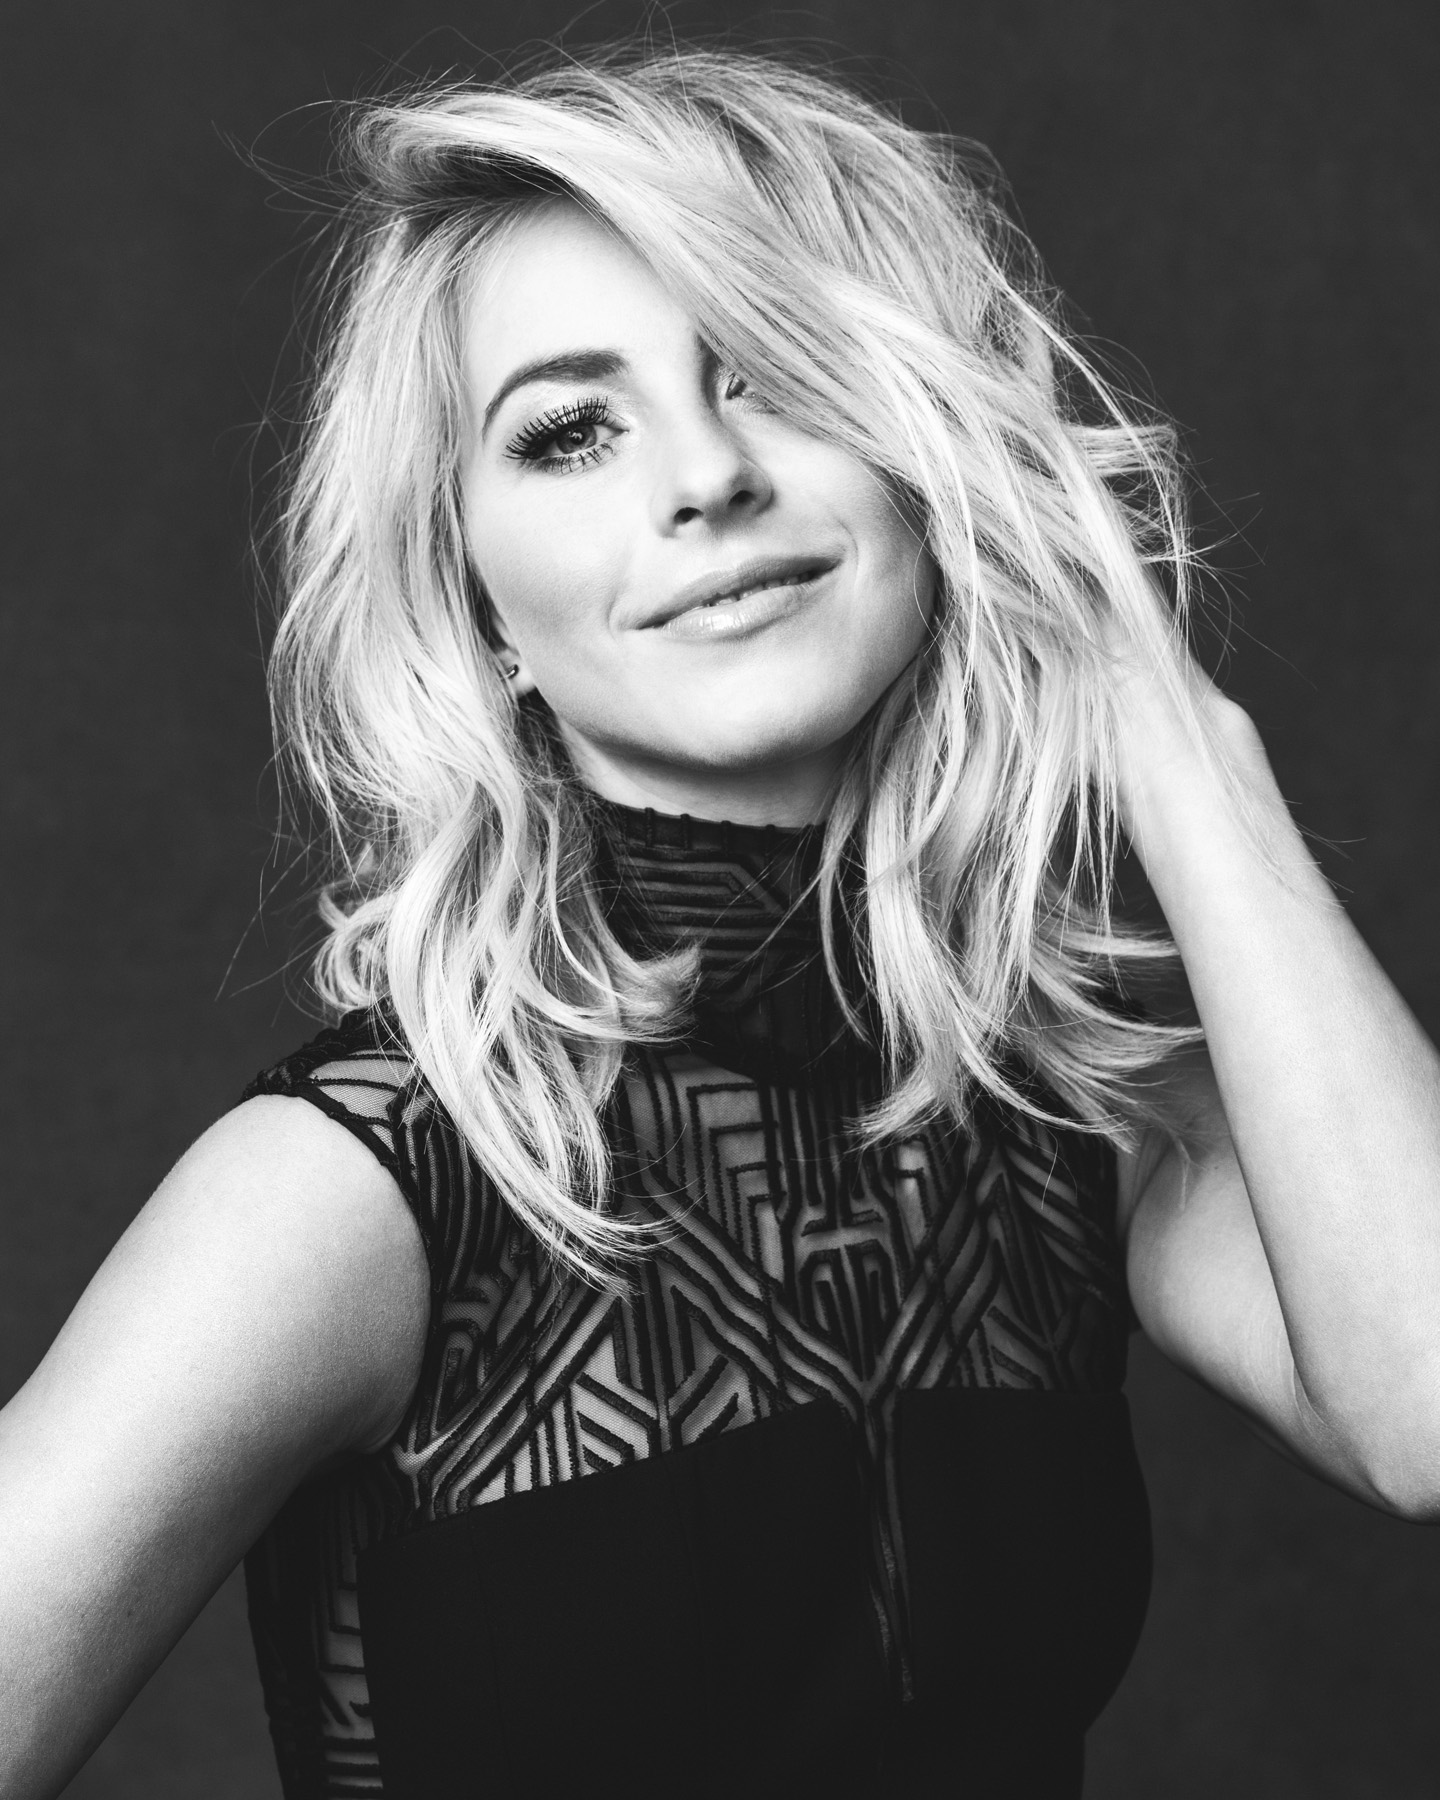 26_JulianneHough_6682b